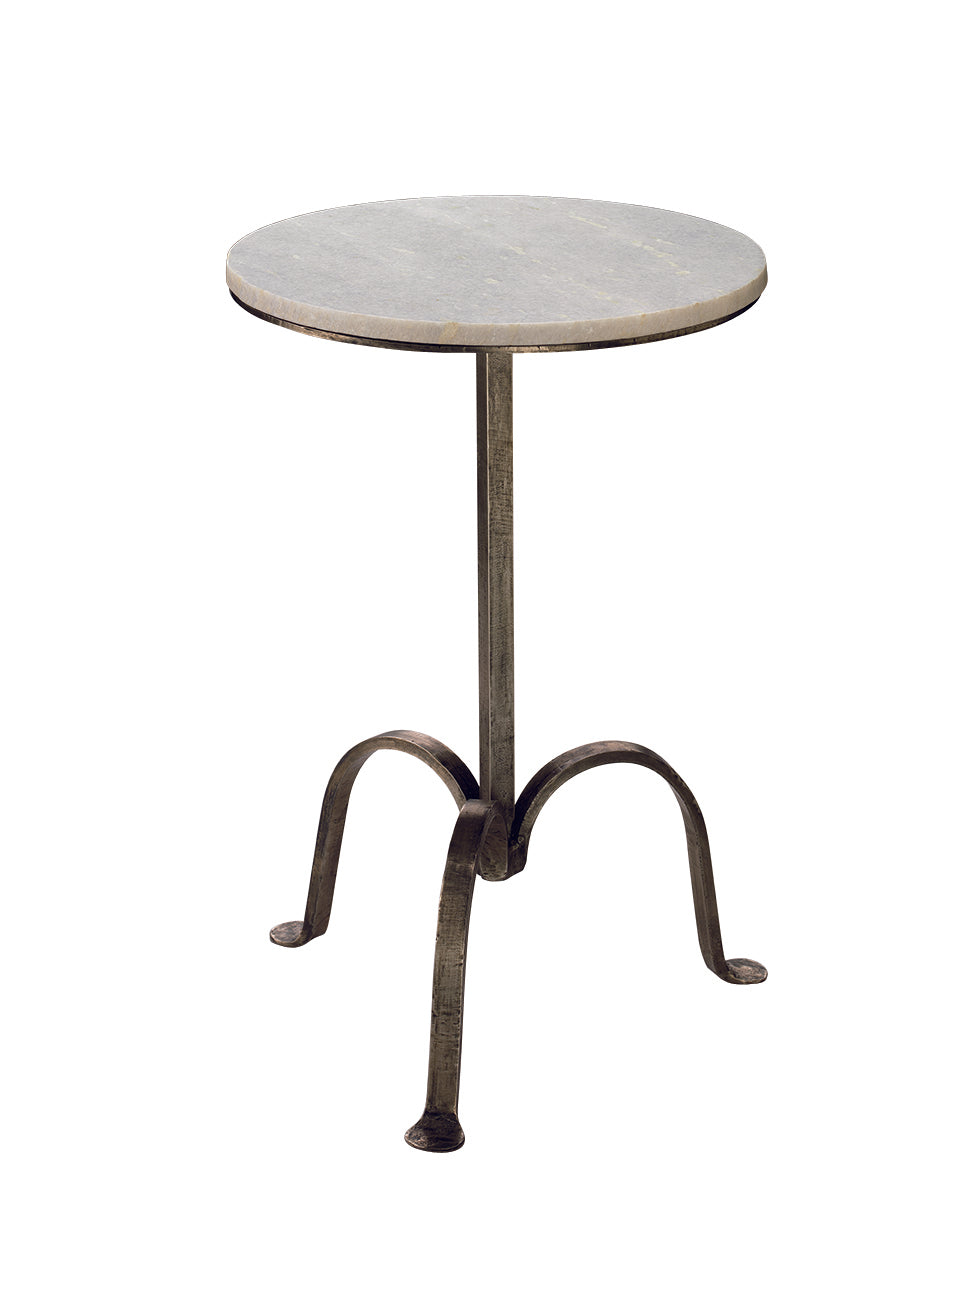 Jamie Young Left Bank Marble Side Table